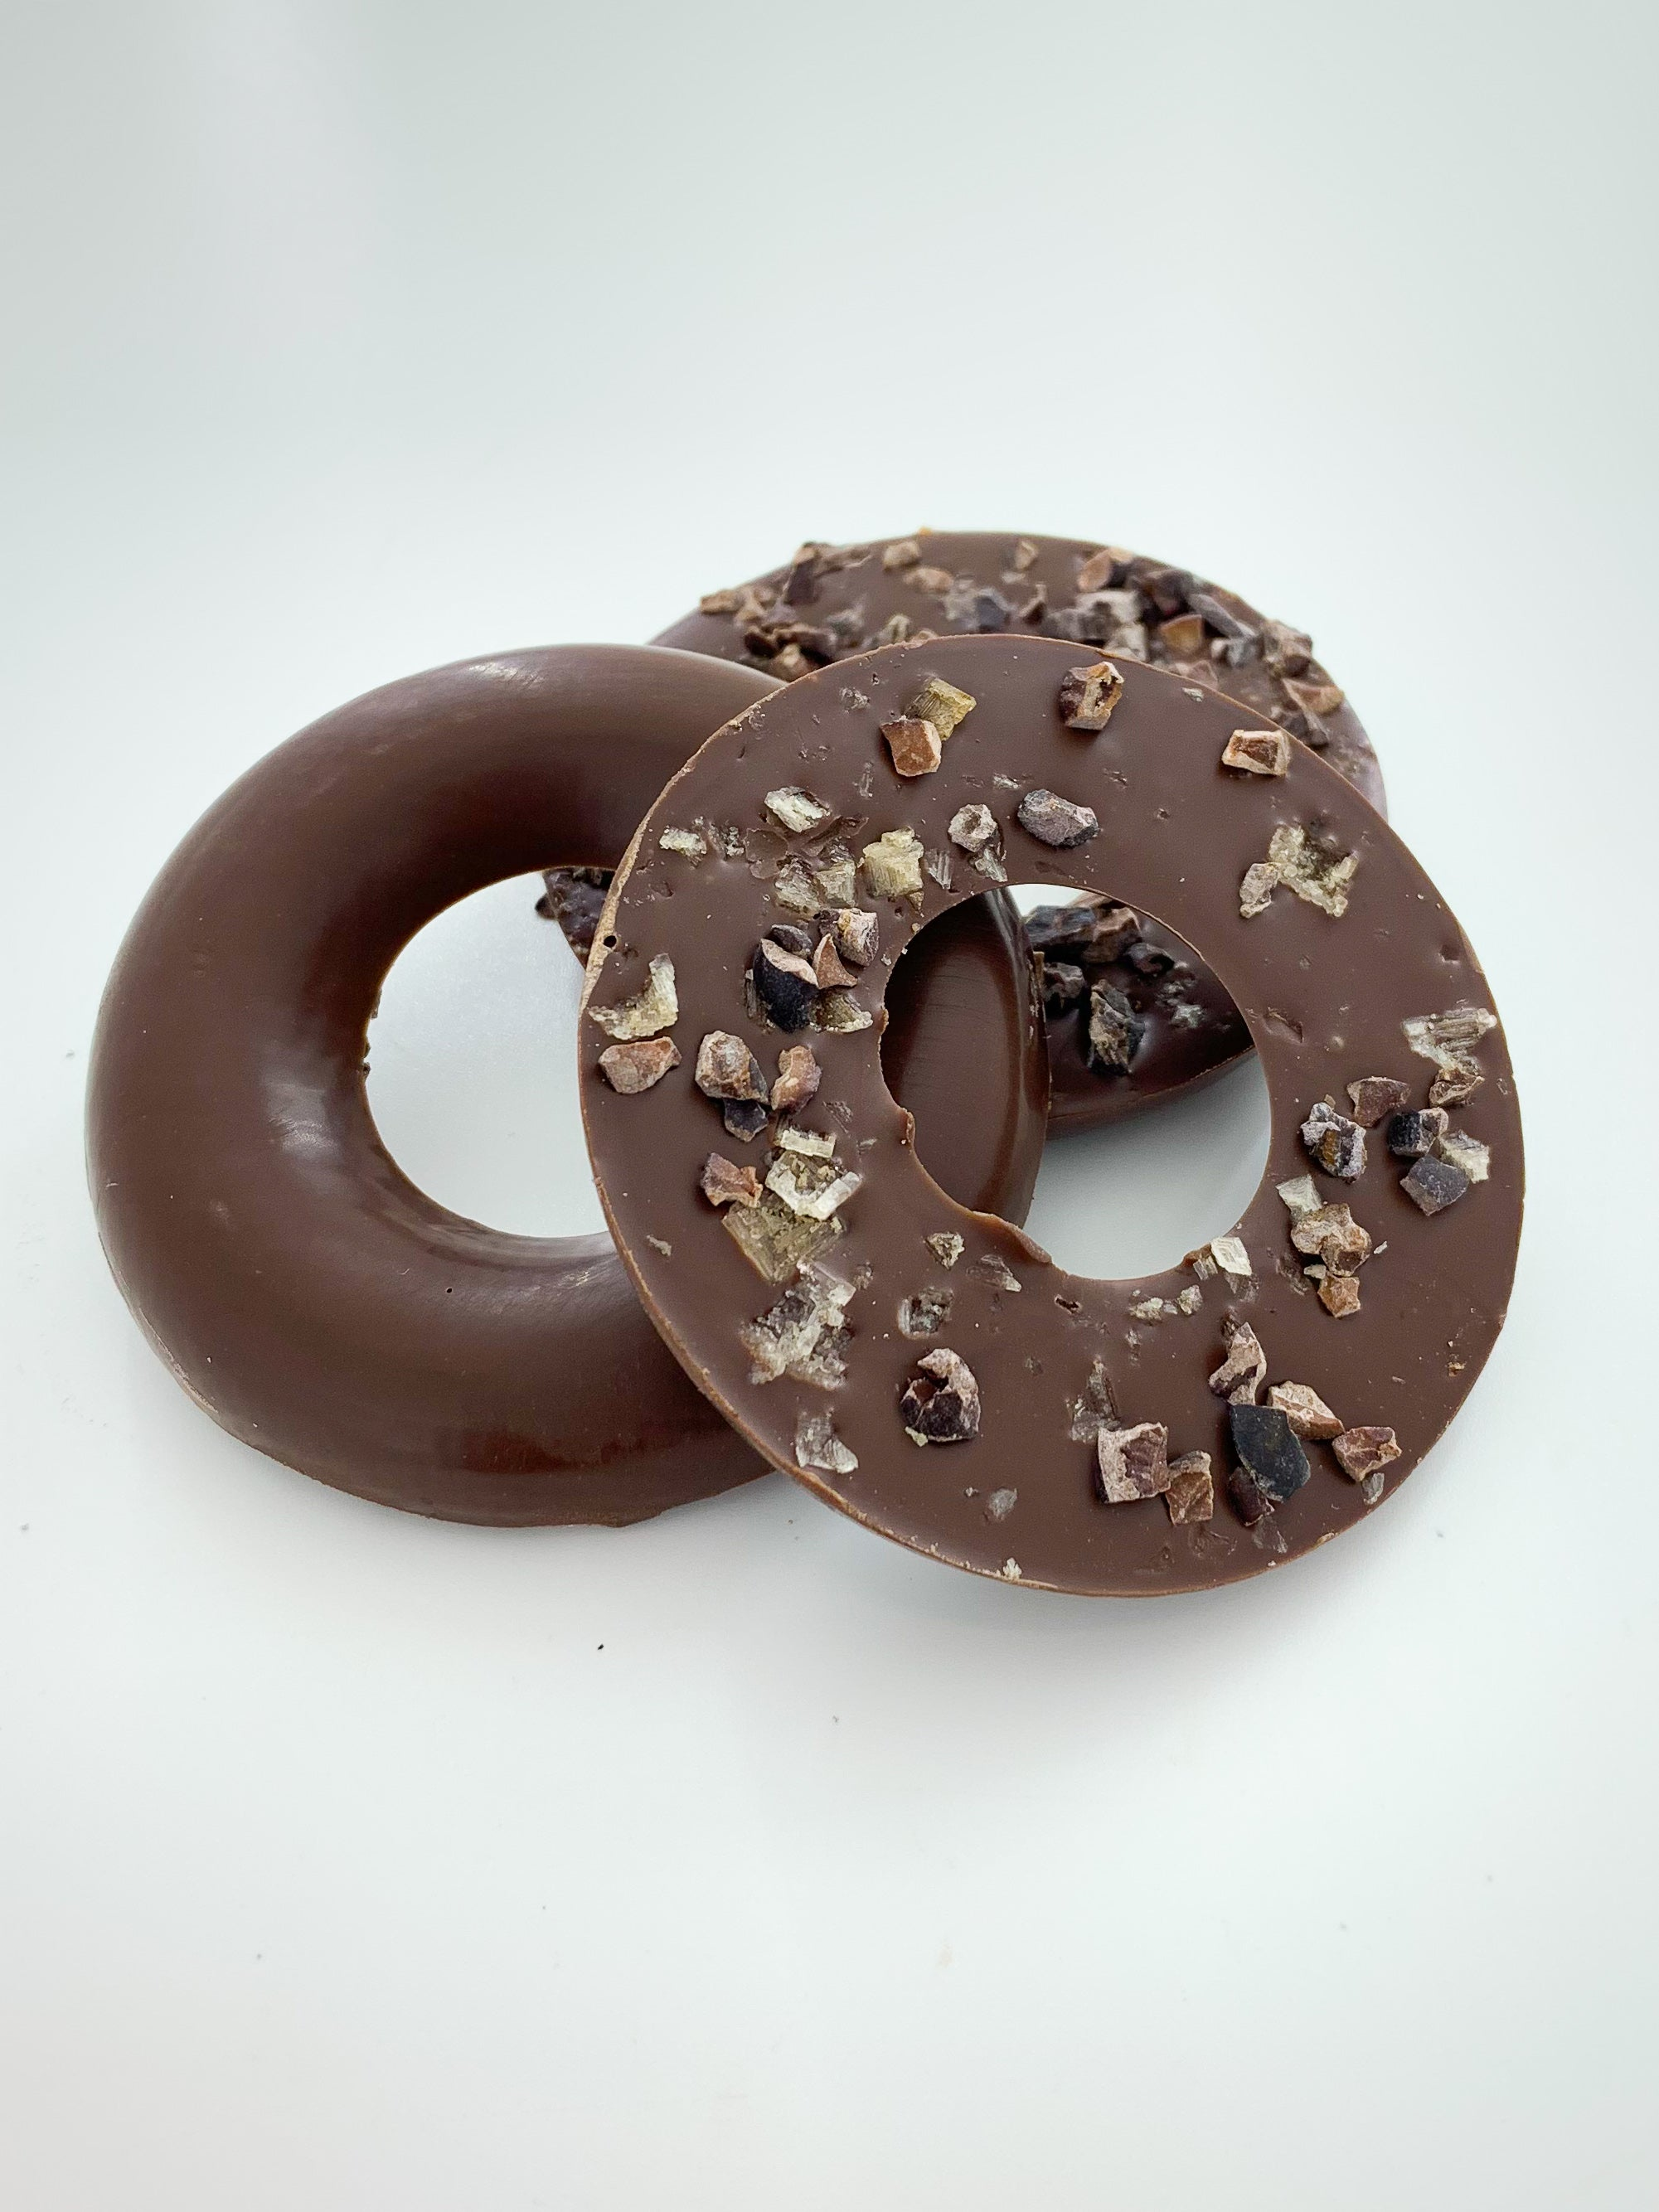 Cacao Nib & Smoked Sea Salt Milk Chocolate Rings